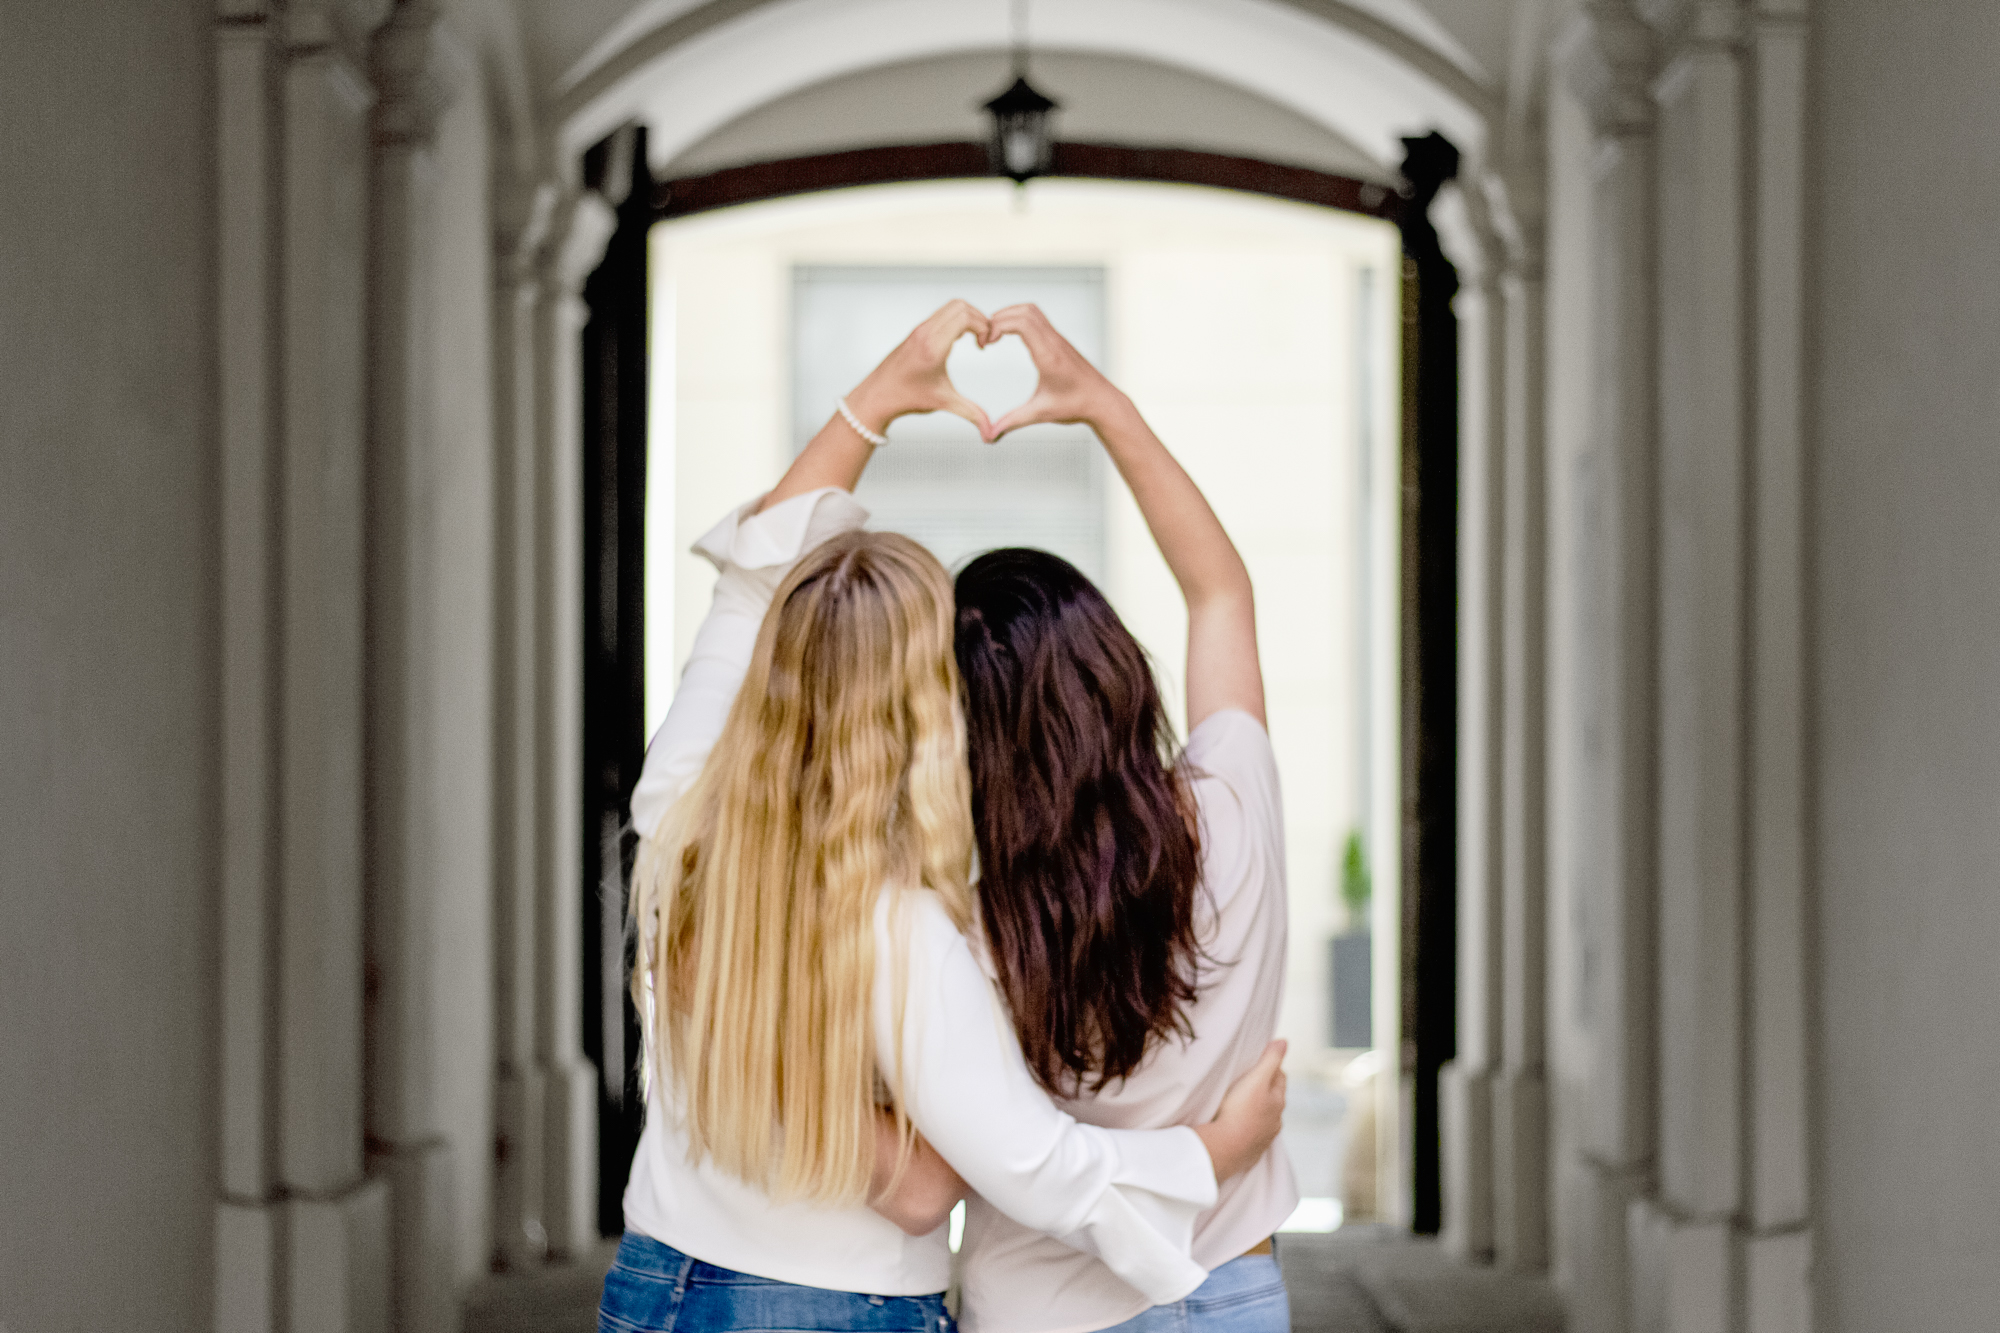 two women hugging, women supporting women, women forming hearts with their hands, blonde and brunette women